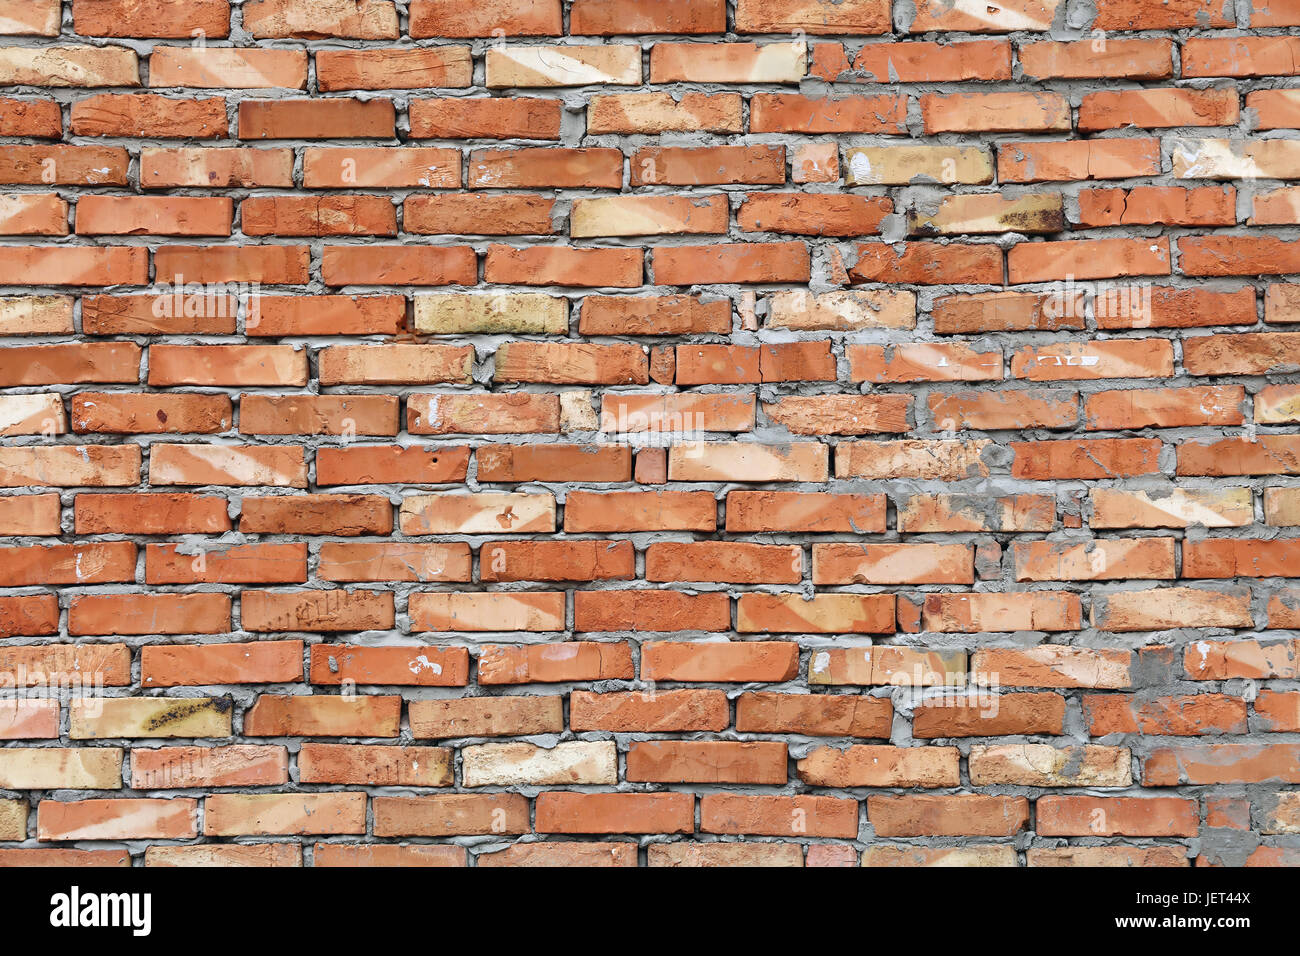 Rough Red Brown Brick Wall Background Texture Close Up Side View